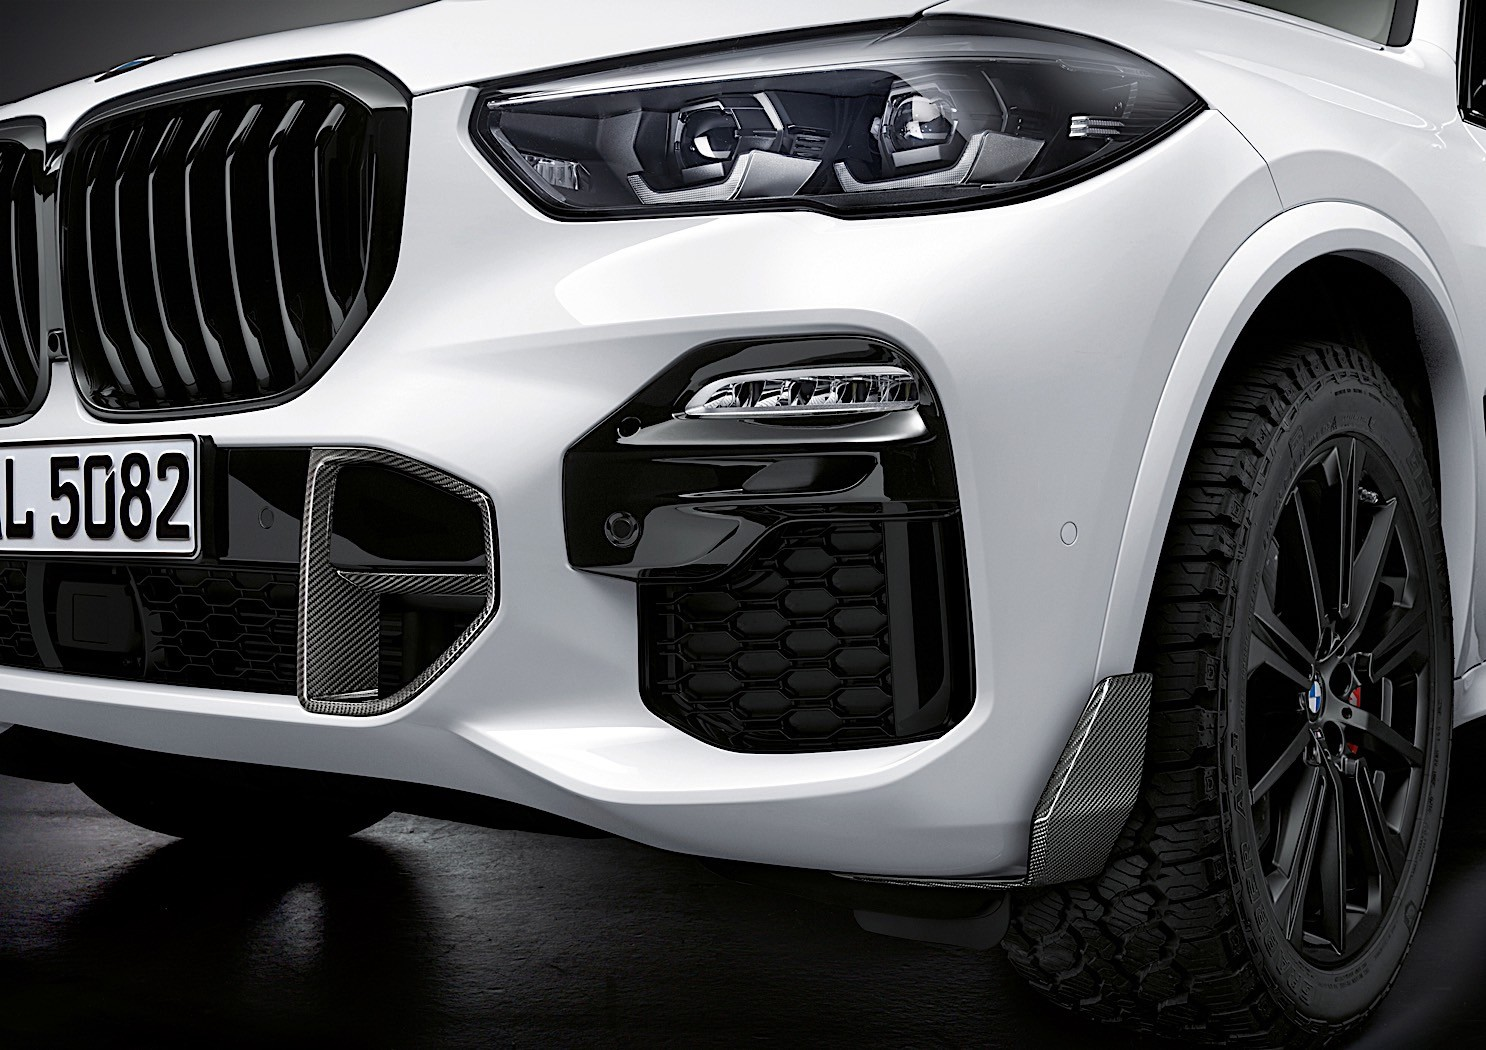 2019 BMW X5 M Performance Parts Are All About Driving ...